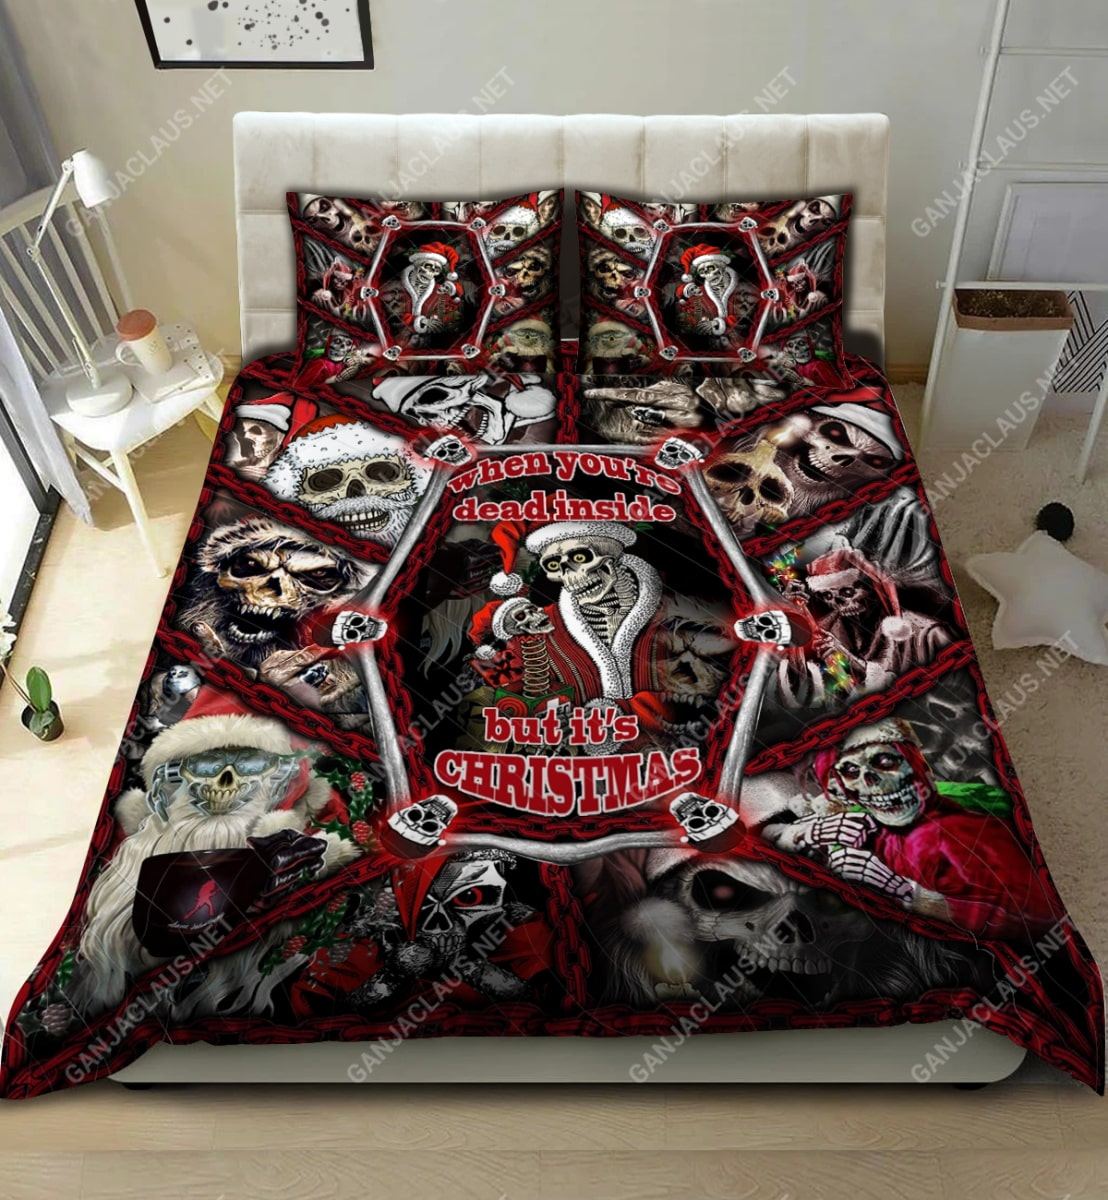 skull when youre dead inside but its christmas full printing bedding set 2